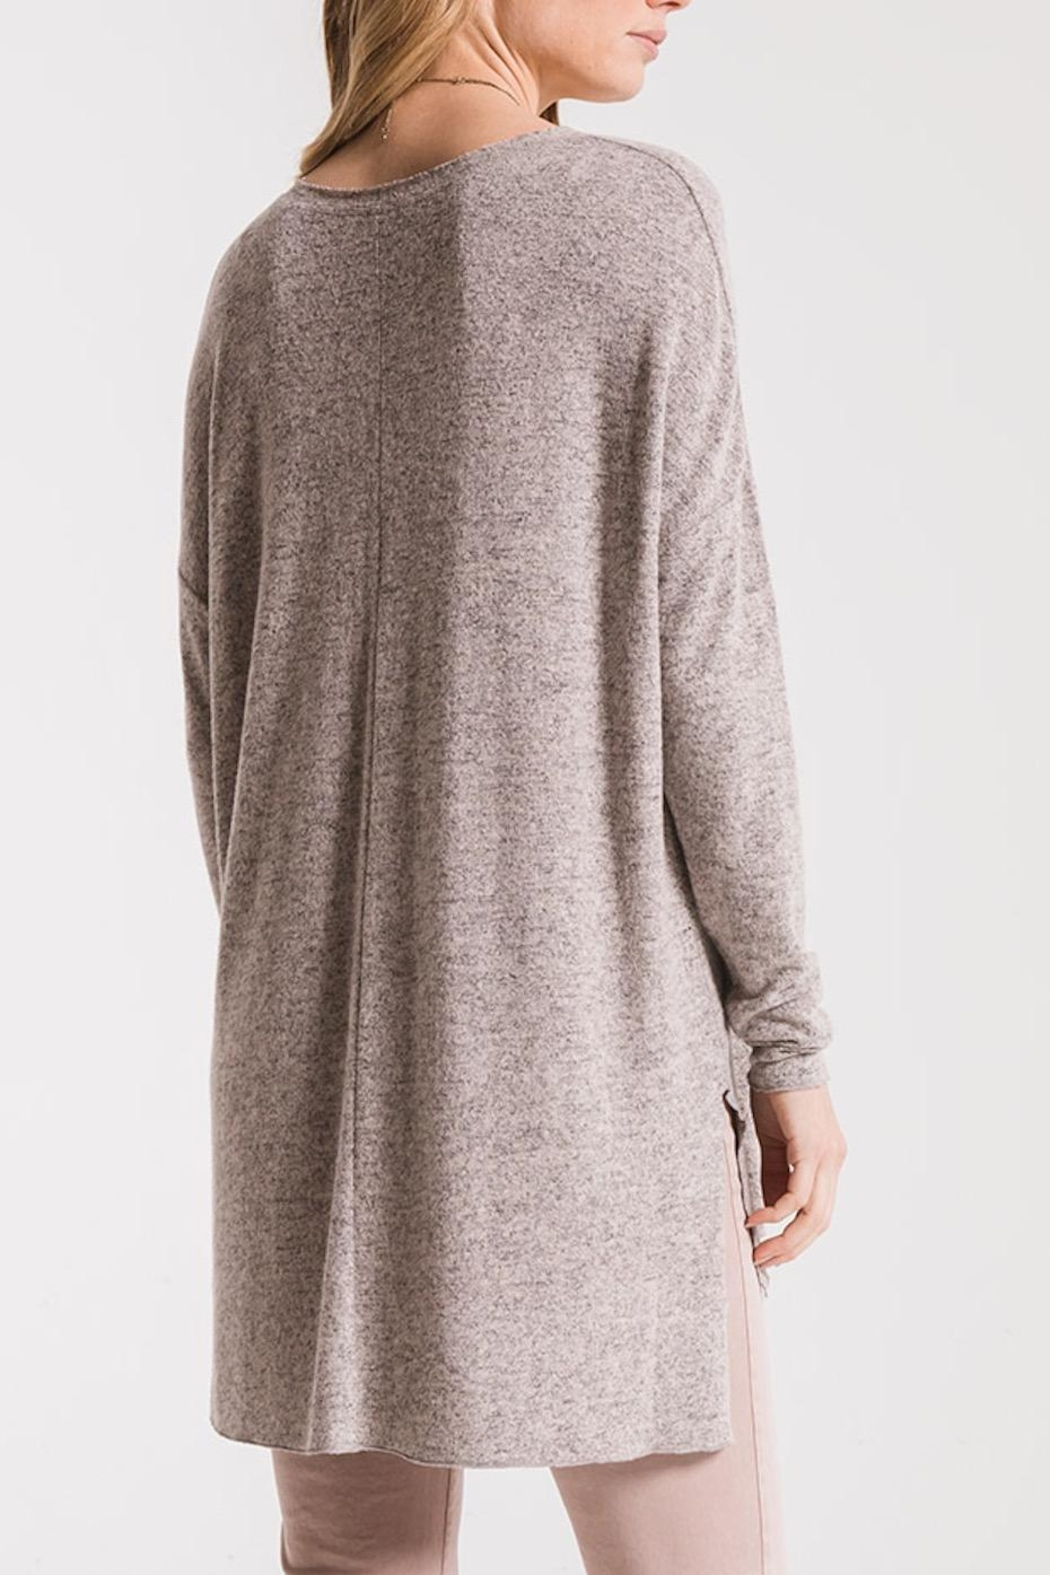 z supply Marled Sweater Tunic - Side Cropped Image